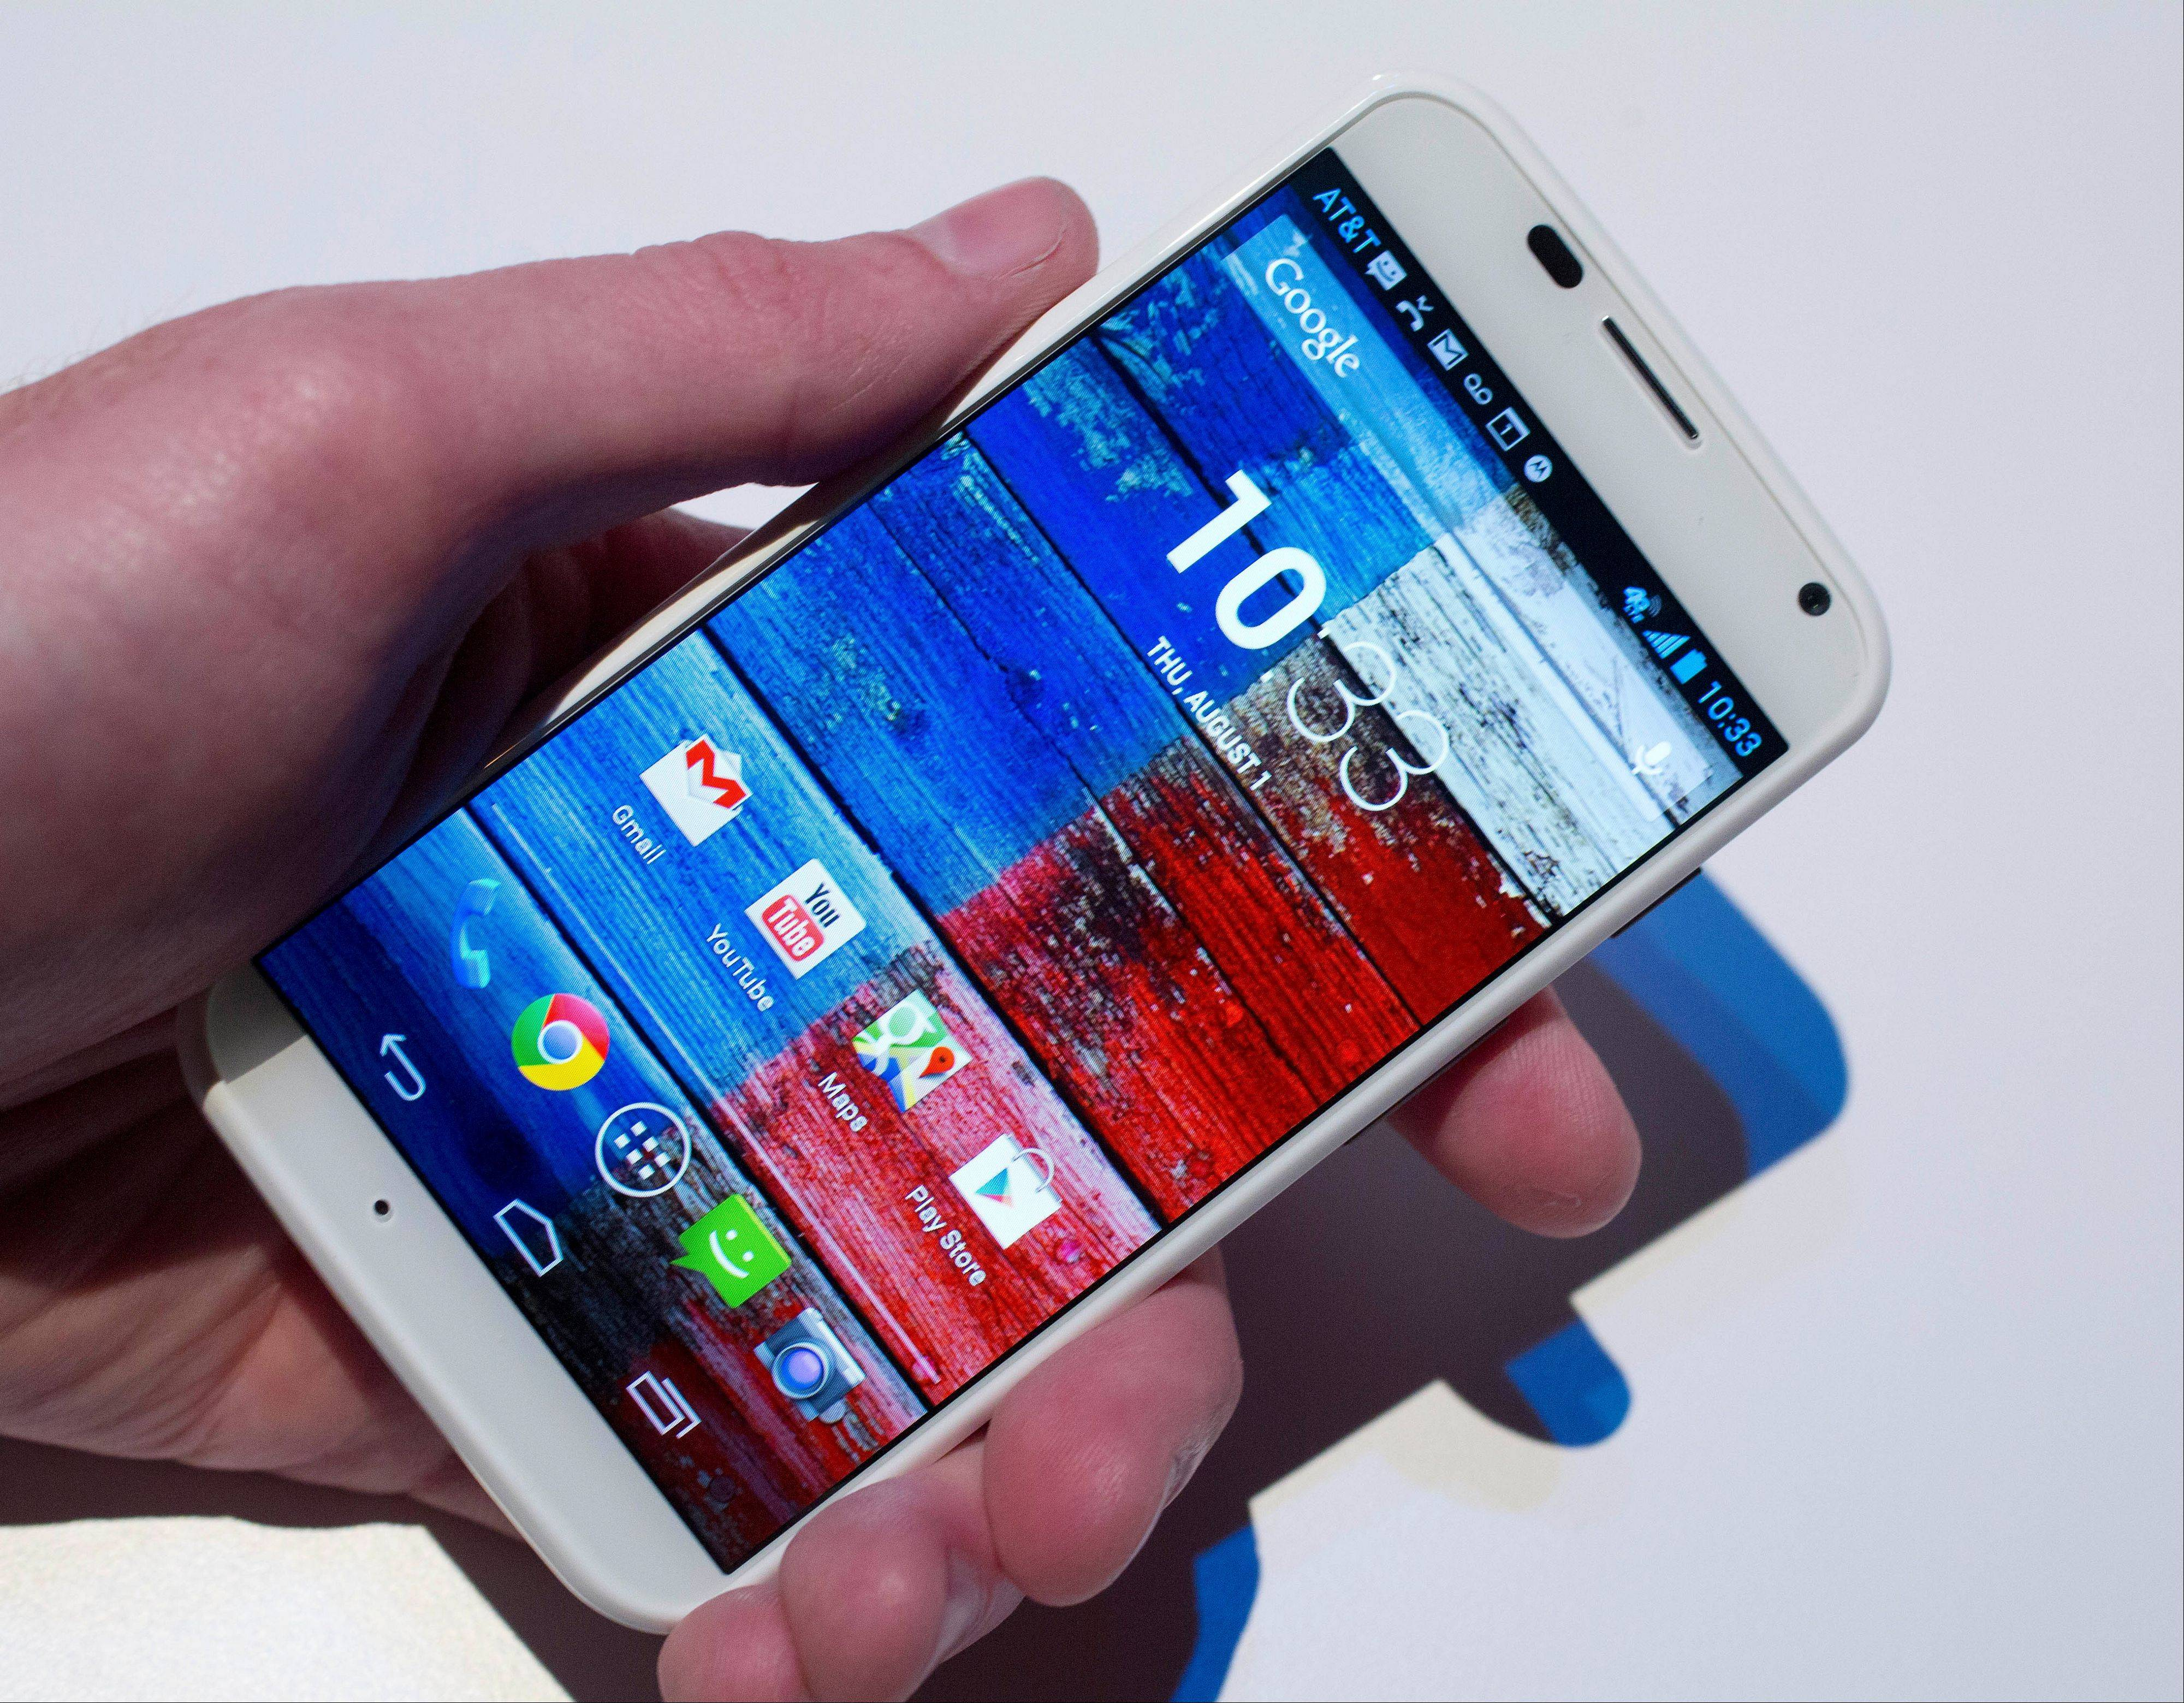 The Motorola Moto X smartphone, using Google's Android software, shown off Thursday at a press preview in New York.